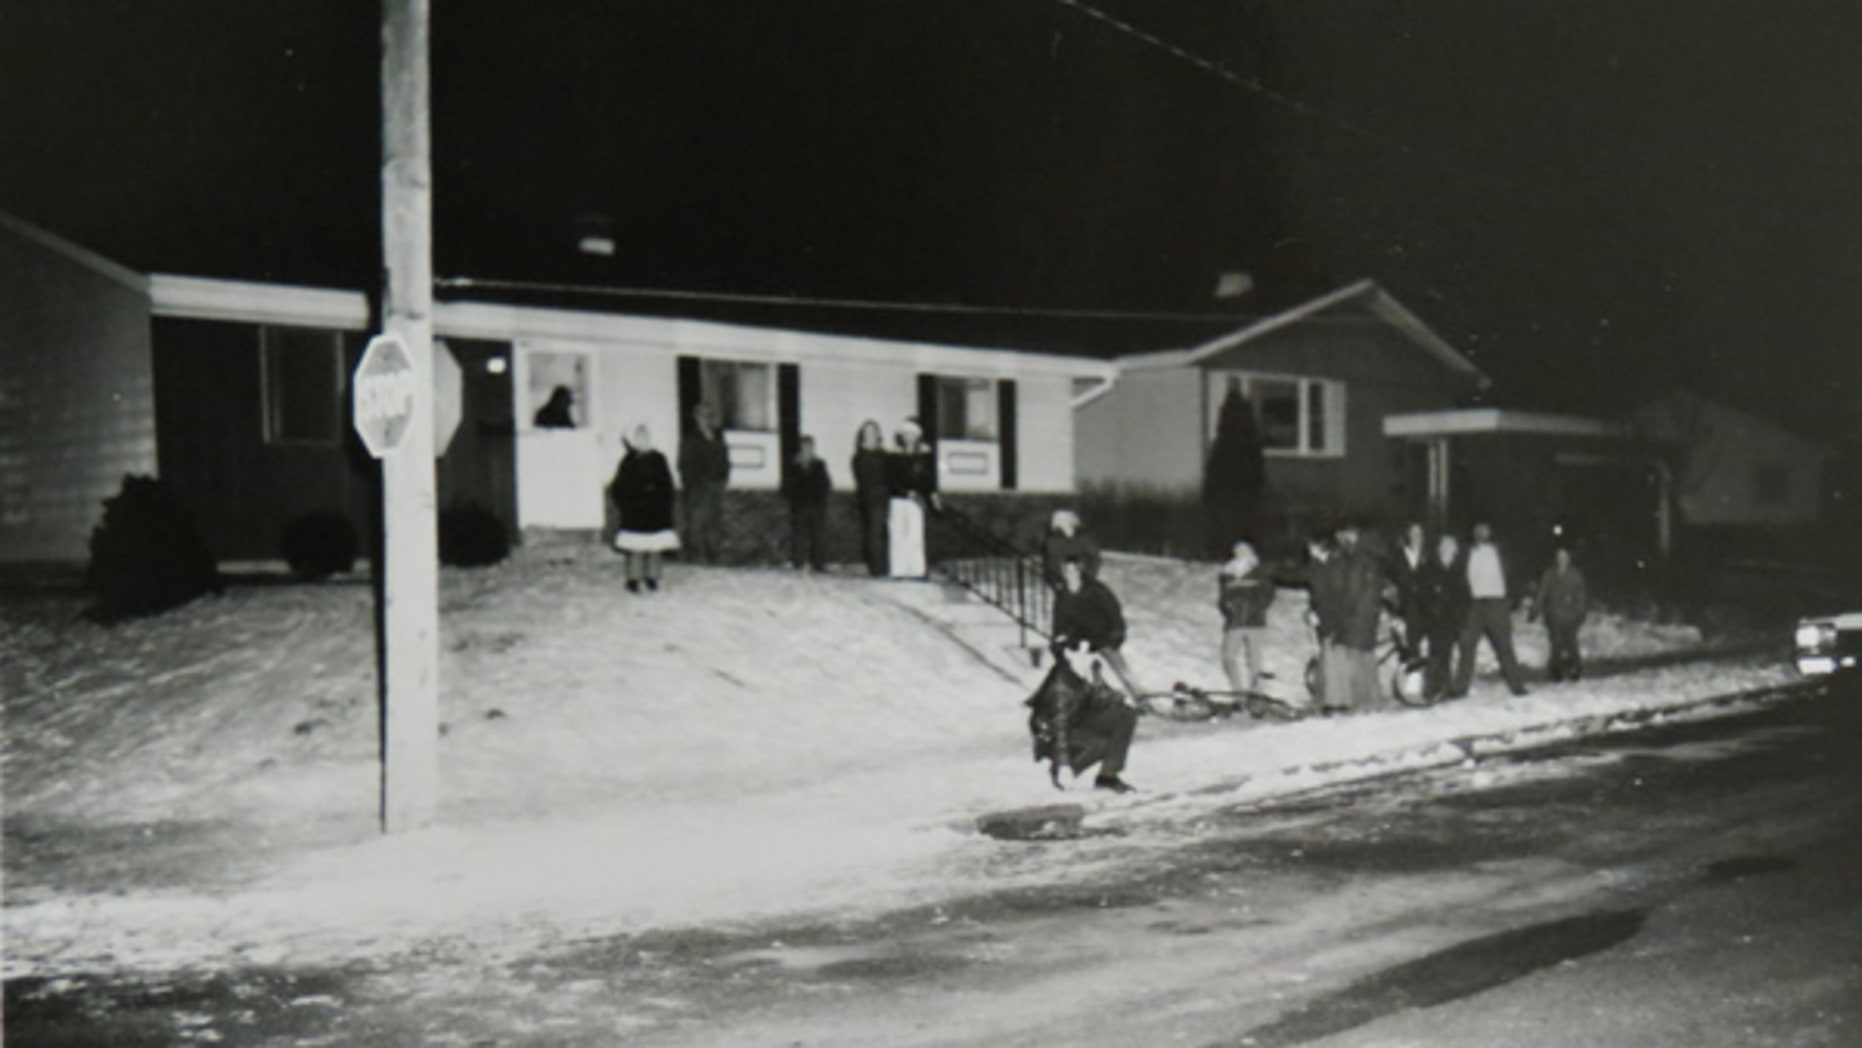 Jan. 6, 1975: The body of an unidentified newborn girl is found inside a storm drain in Waukesha, a suburb of Milwaukee.